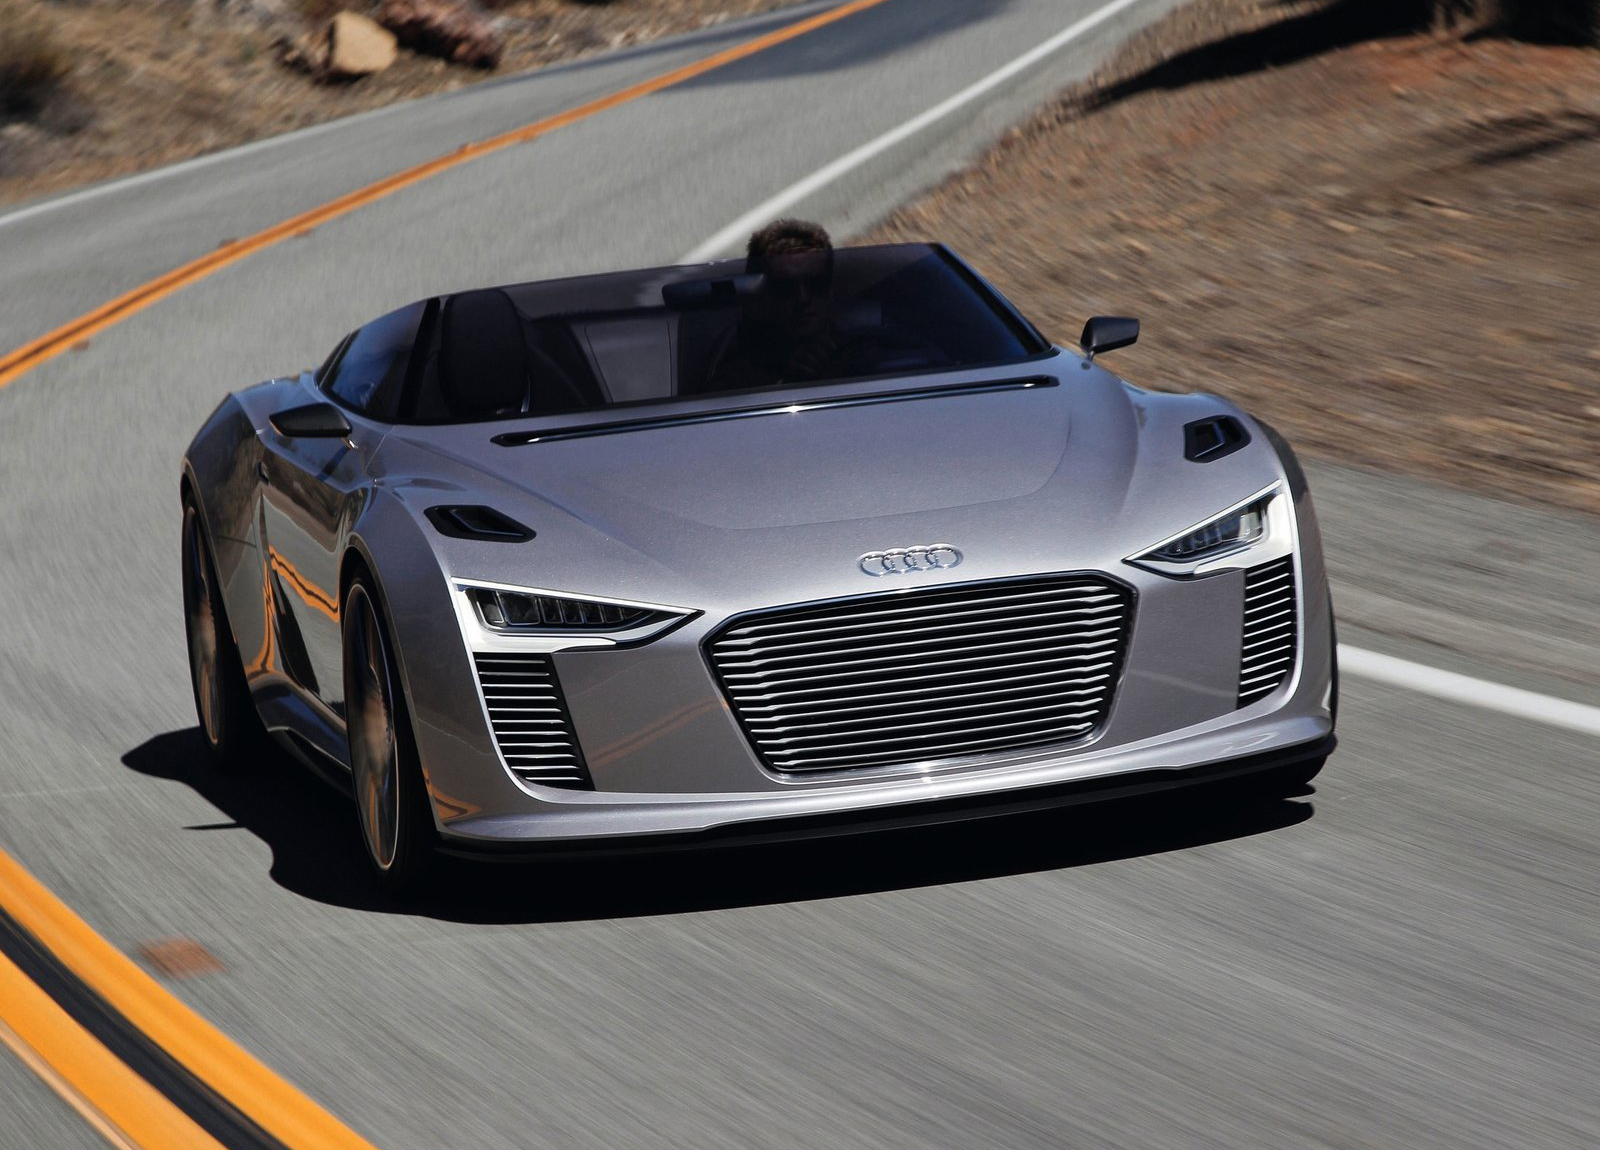 Audi E Tron Spyder Hd Wallpapers The World Of Audi